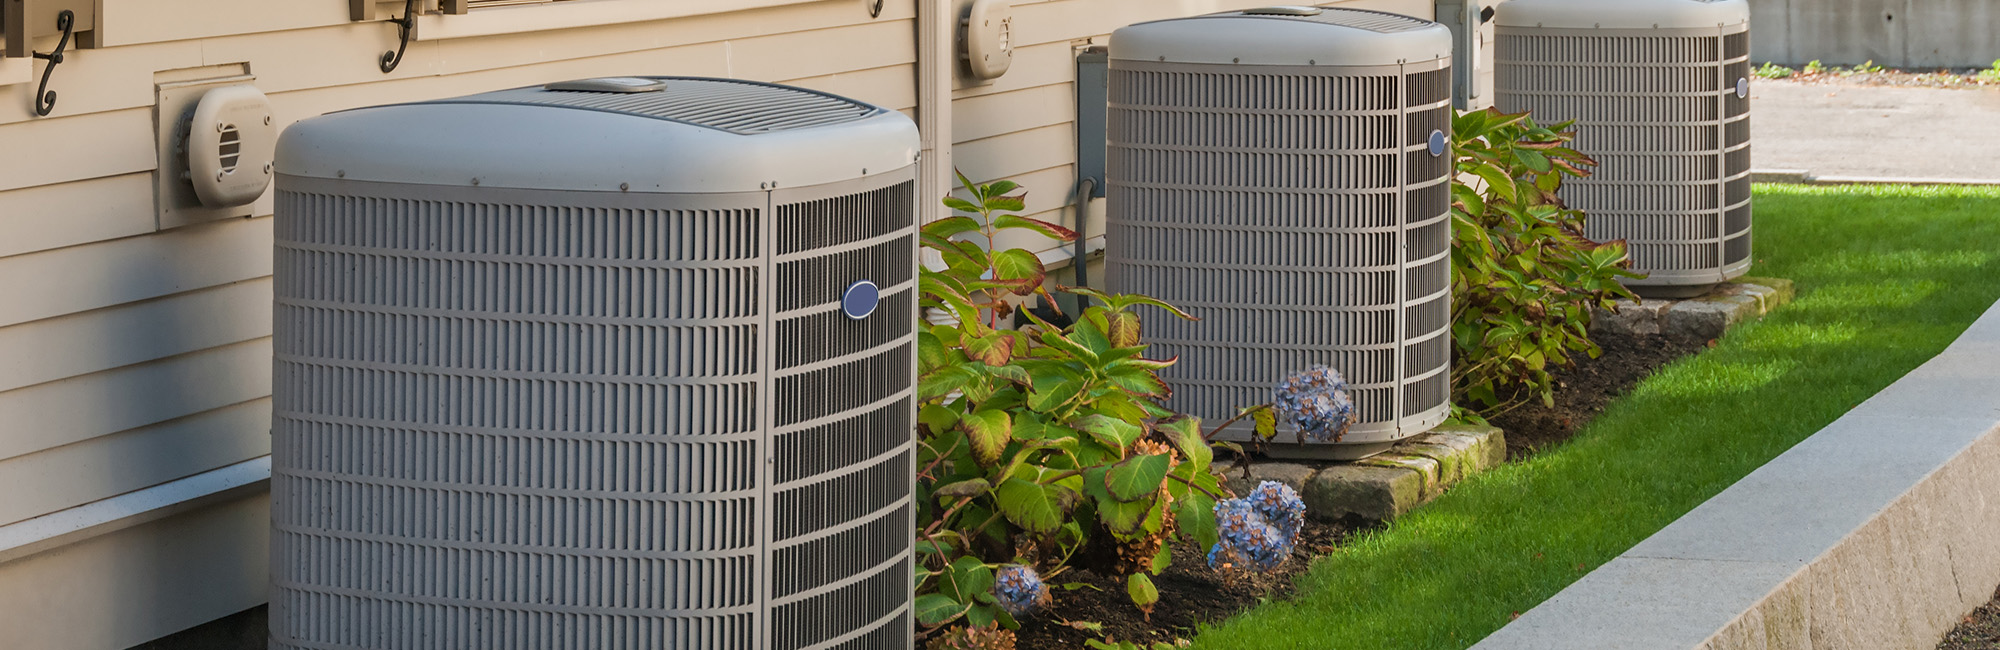 Outdoor AC Units